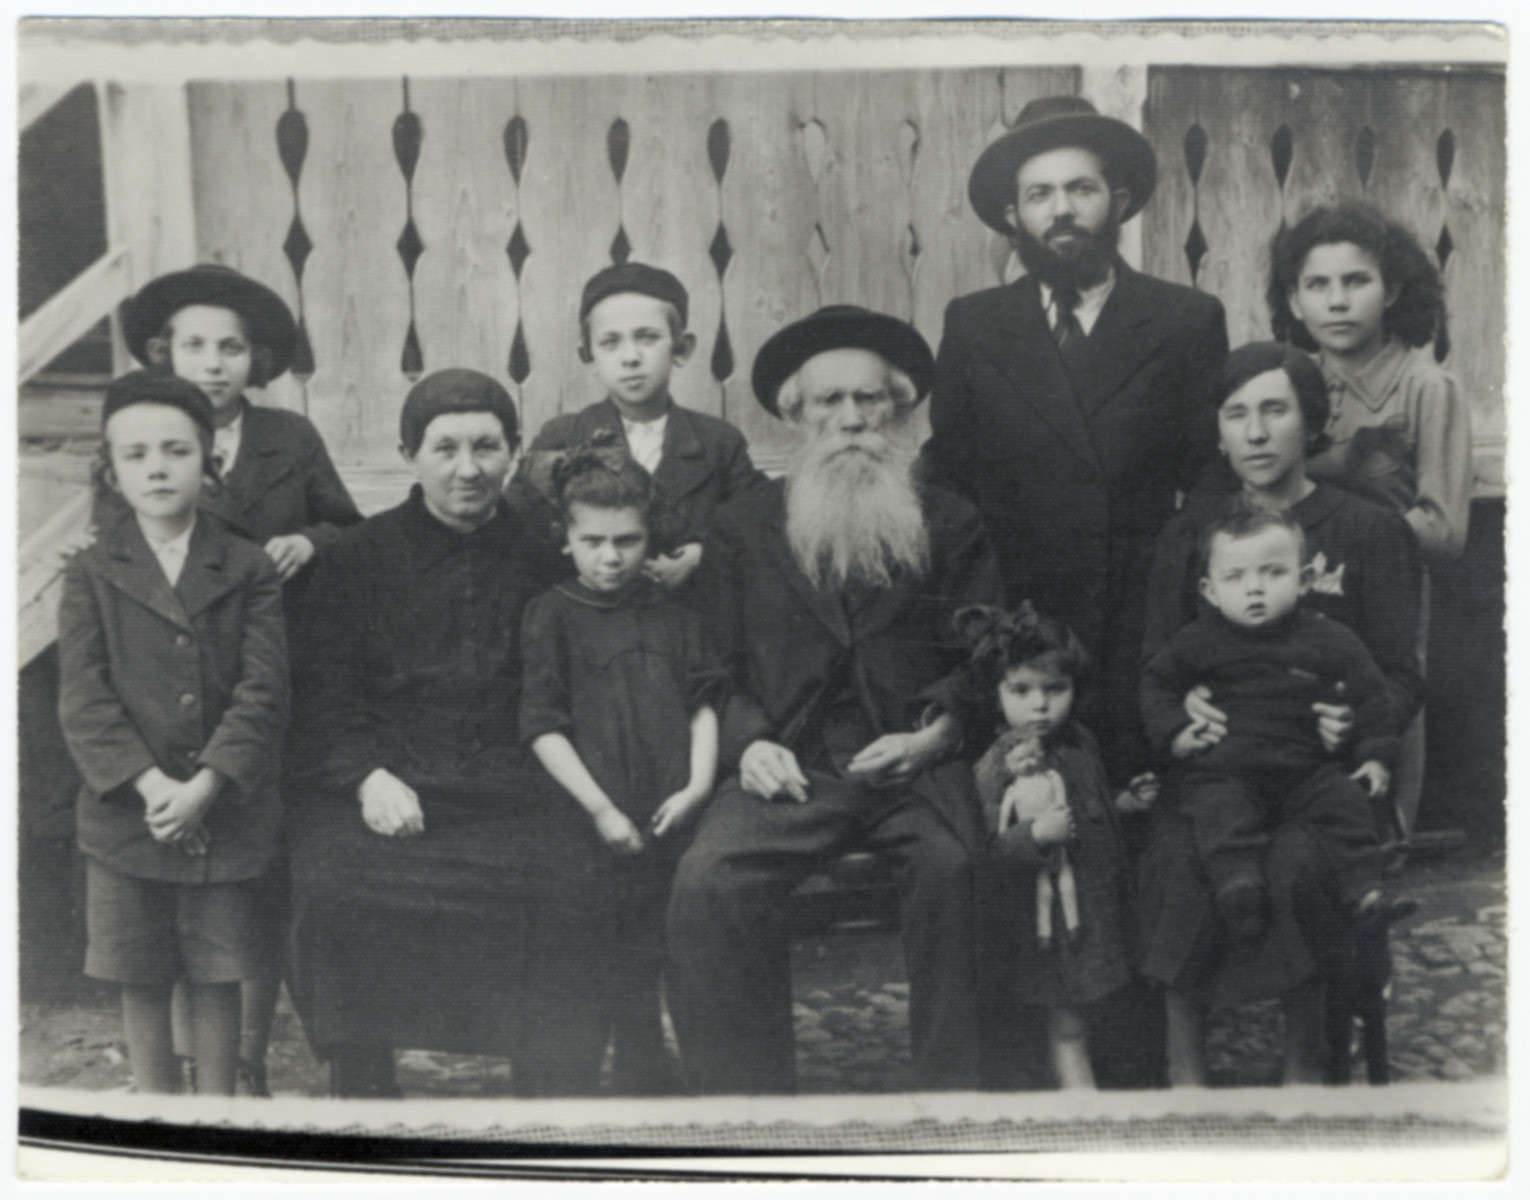 Group portrait of the family of Rabbi Fishel Ostreicher.  He is pictured with his parents and children.  Rabbi Ostreicher served as secretary of the Jewish community in Munkacs.